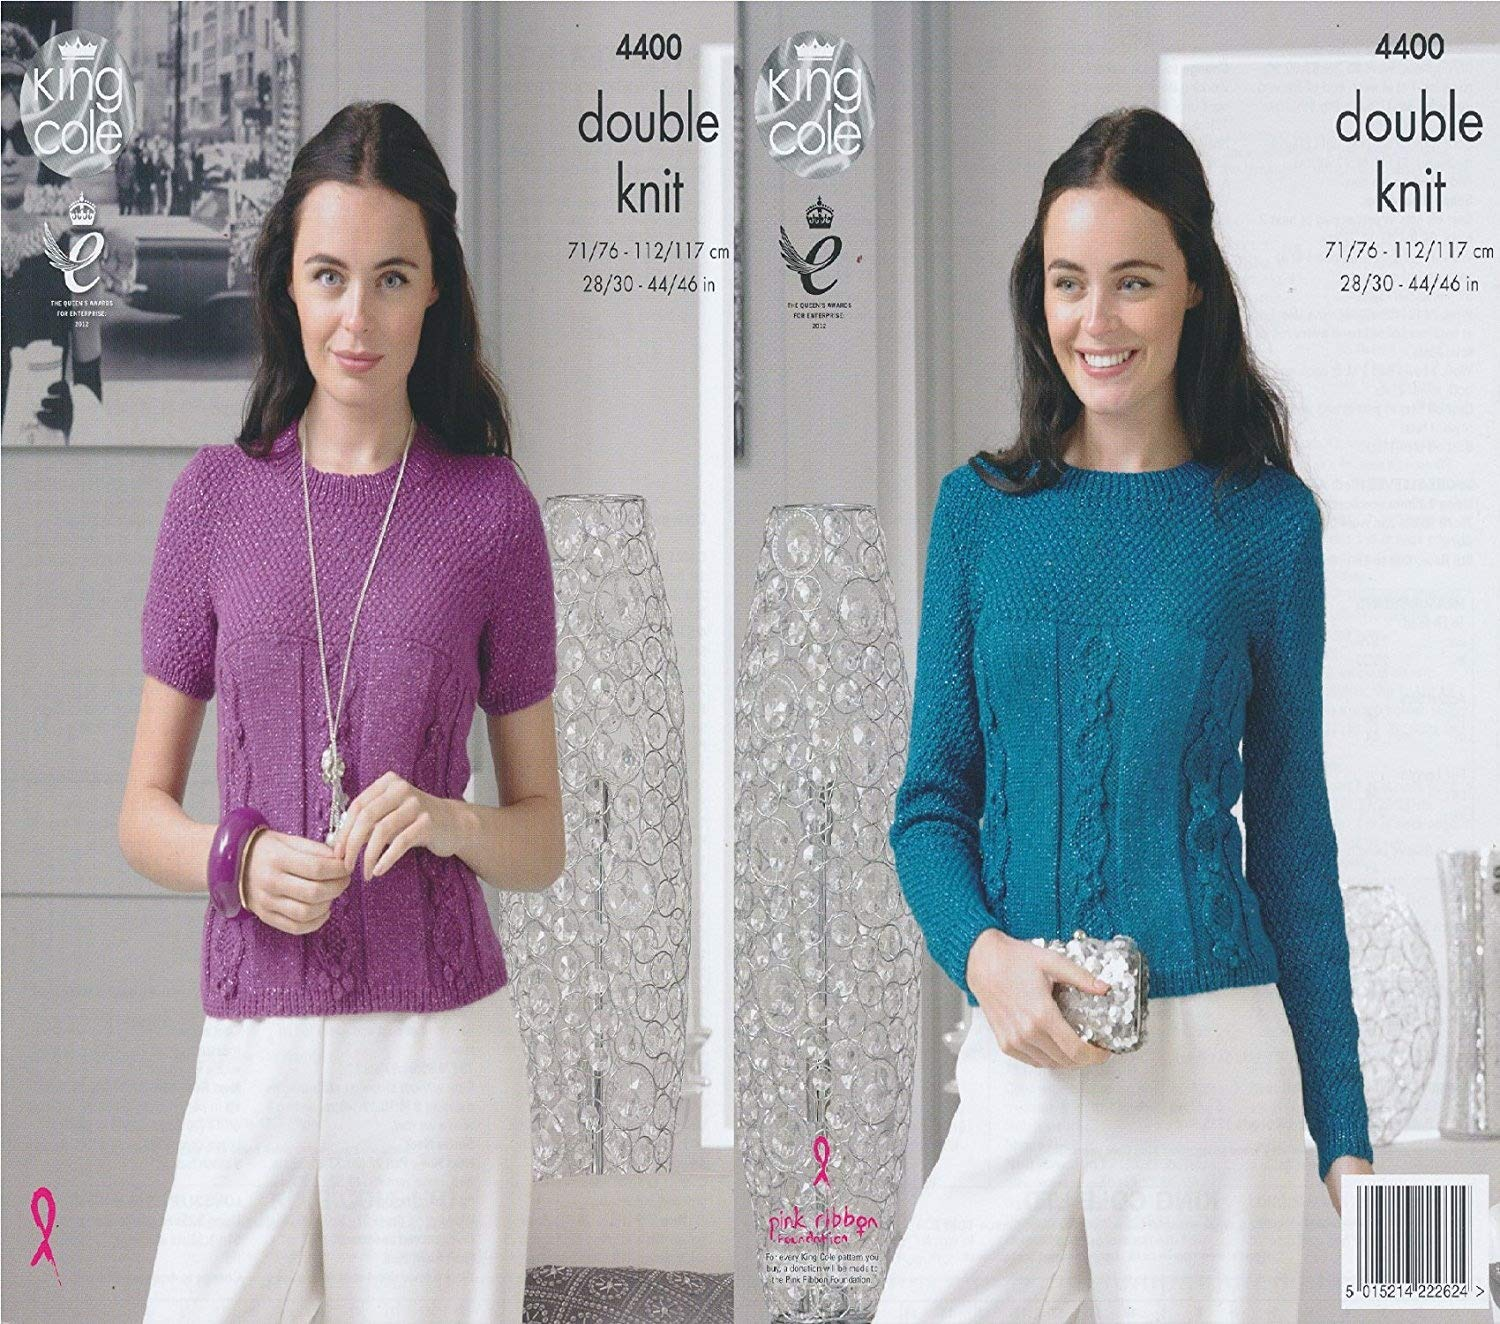 ad5188f3a King Cole Ladies Double Knitting Pattern Womens Cable Detail Sweater   Top  Glitz DK (4400) by King Cole  Amazon.co.uk  Kitchen   Home